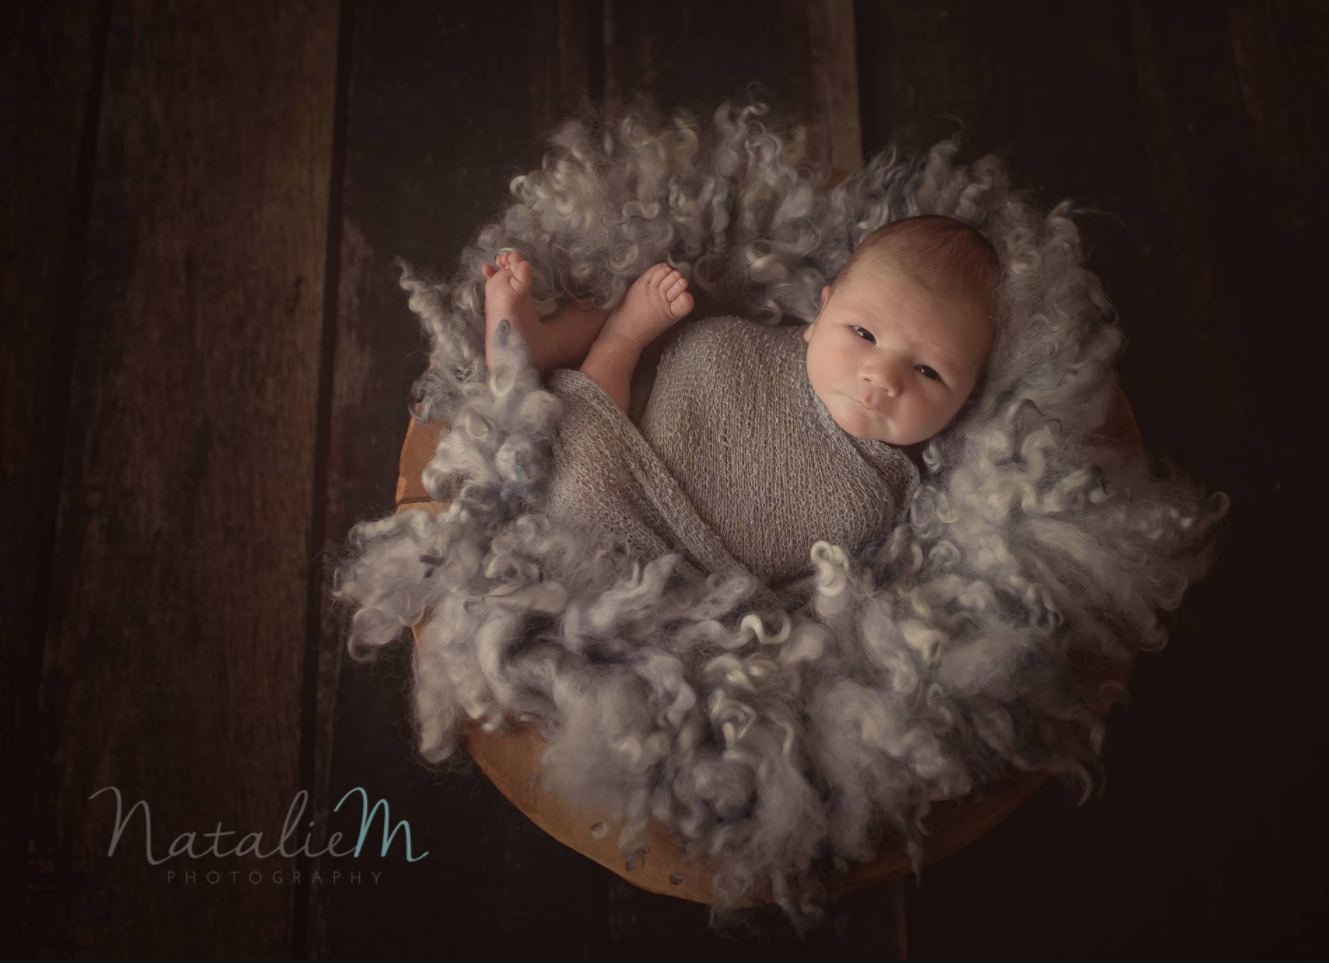 - More than just a photo shoot, a beautiful maternal bonding experience. - Kathy Morris